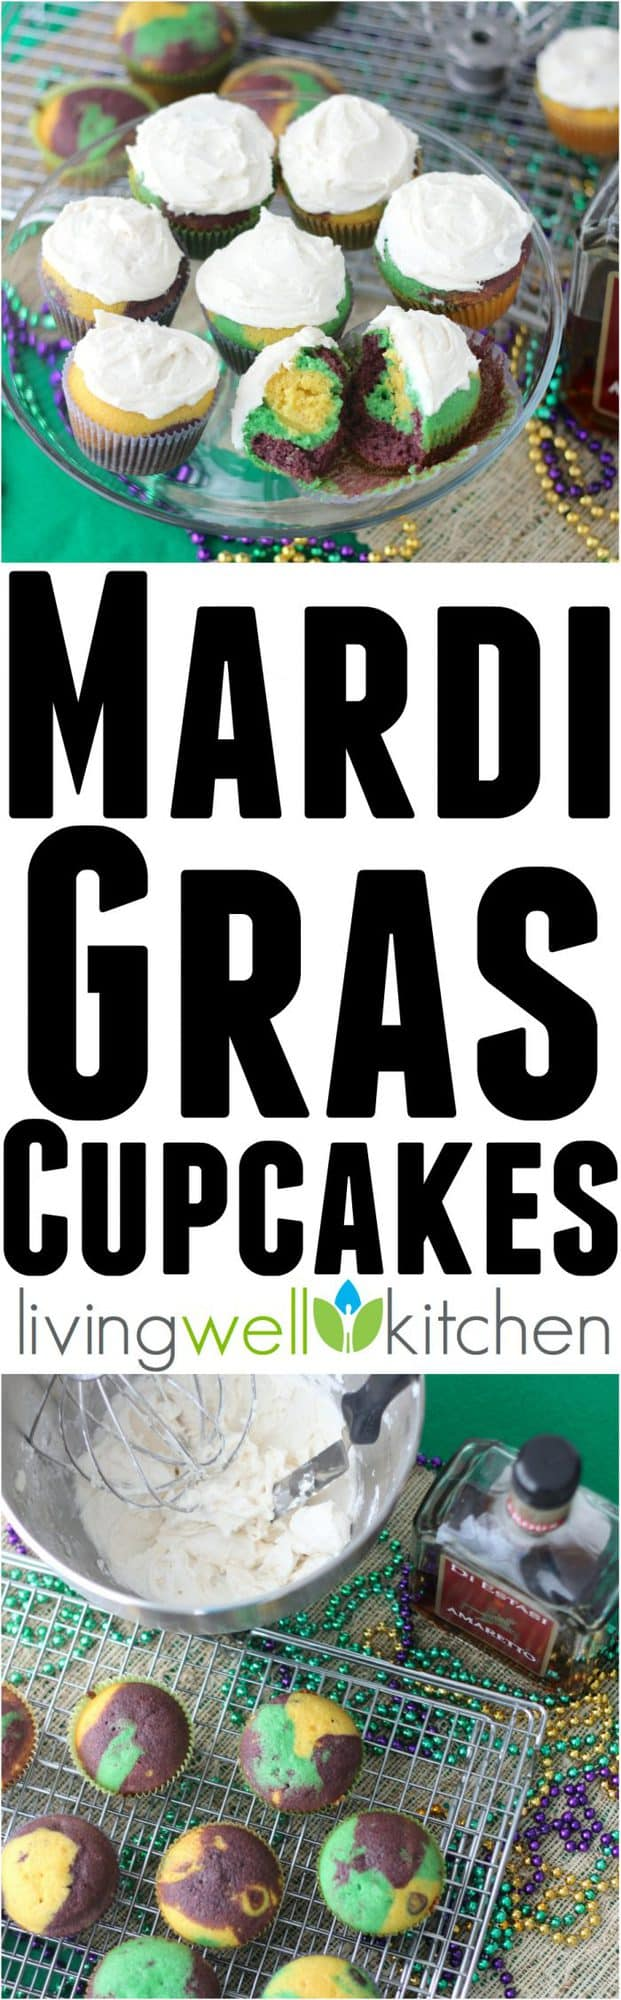 These boozy Mardi Gras cupcakes from @memeinge are a fun and festive treat for the Carnival season. Great dessert recipe idea for a Fat Tuesday party